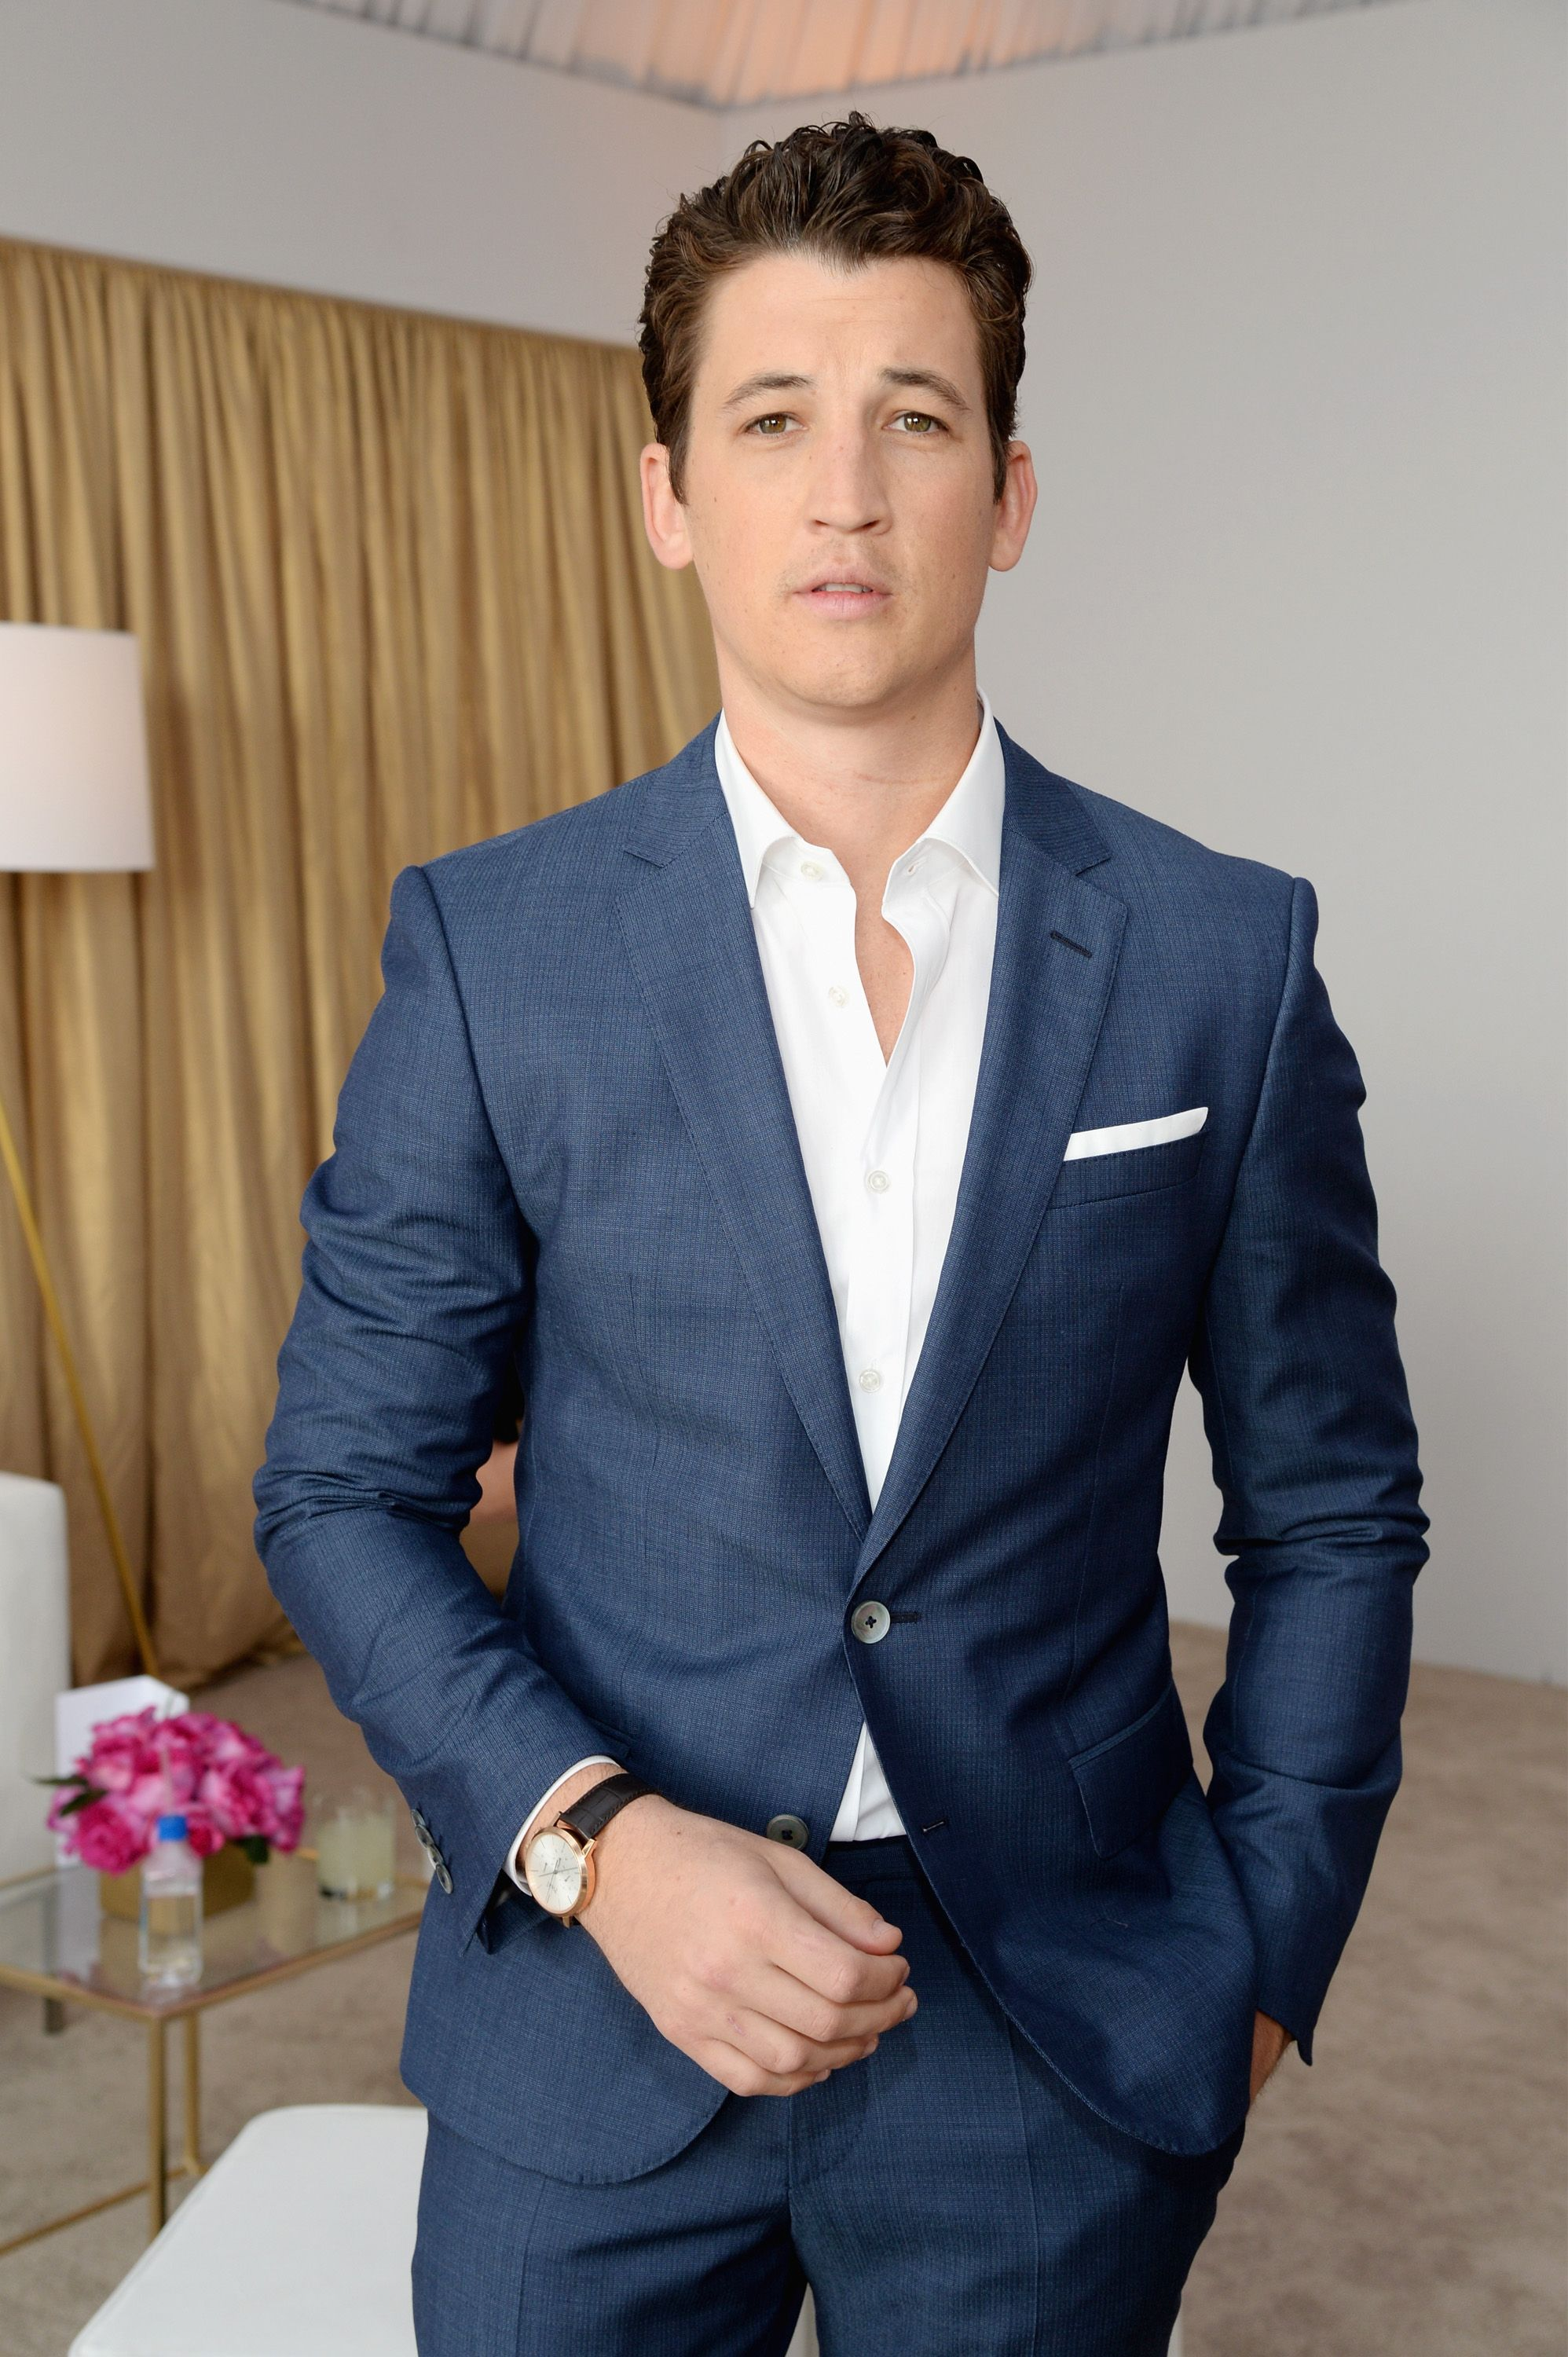 Why Miles Teller's New Show May Be His Most Controversial Project Yet